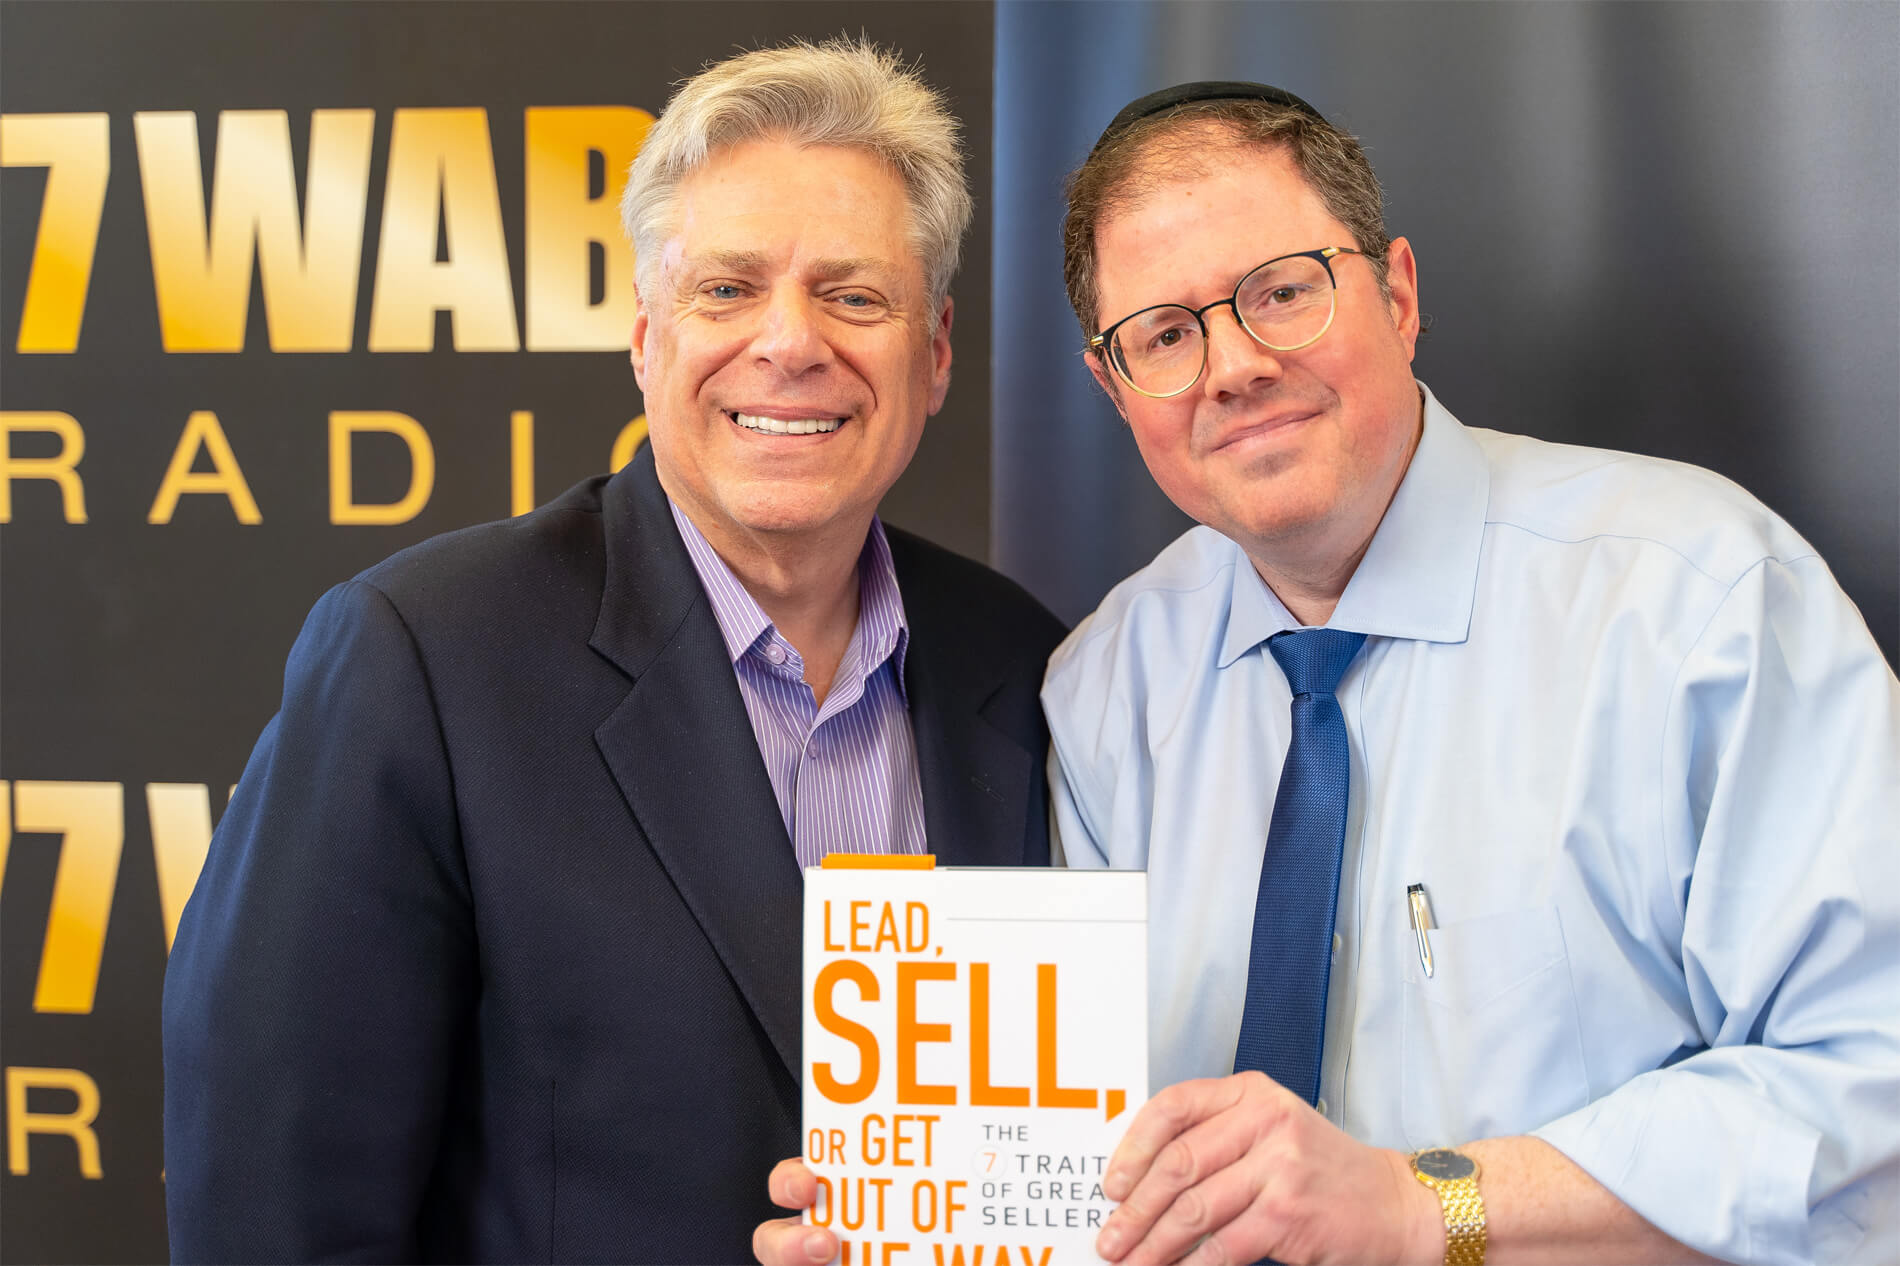 Listen to Ron Karr's interview on Mind Your Business on WABC 77 Radio